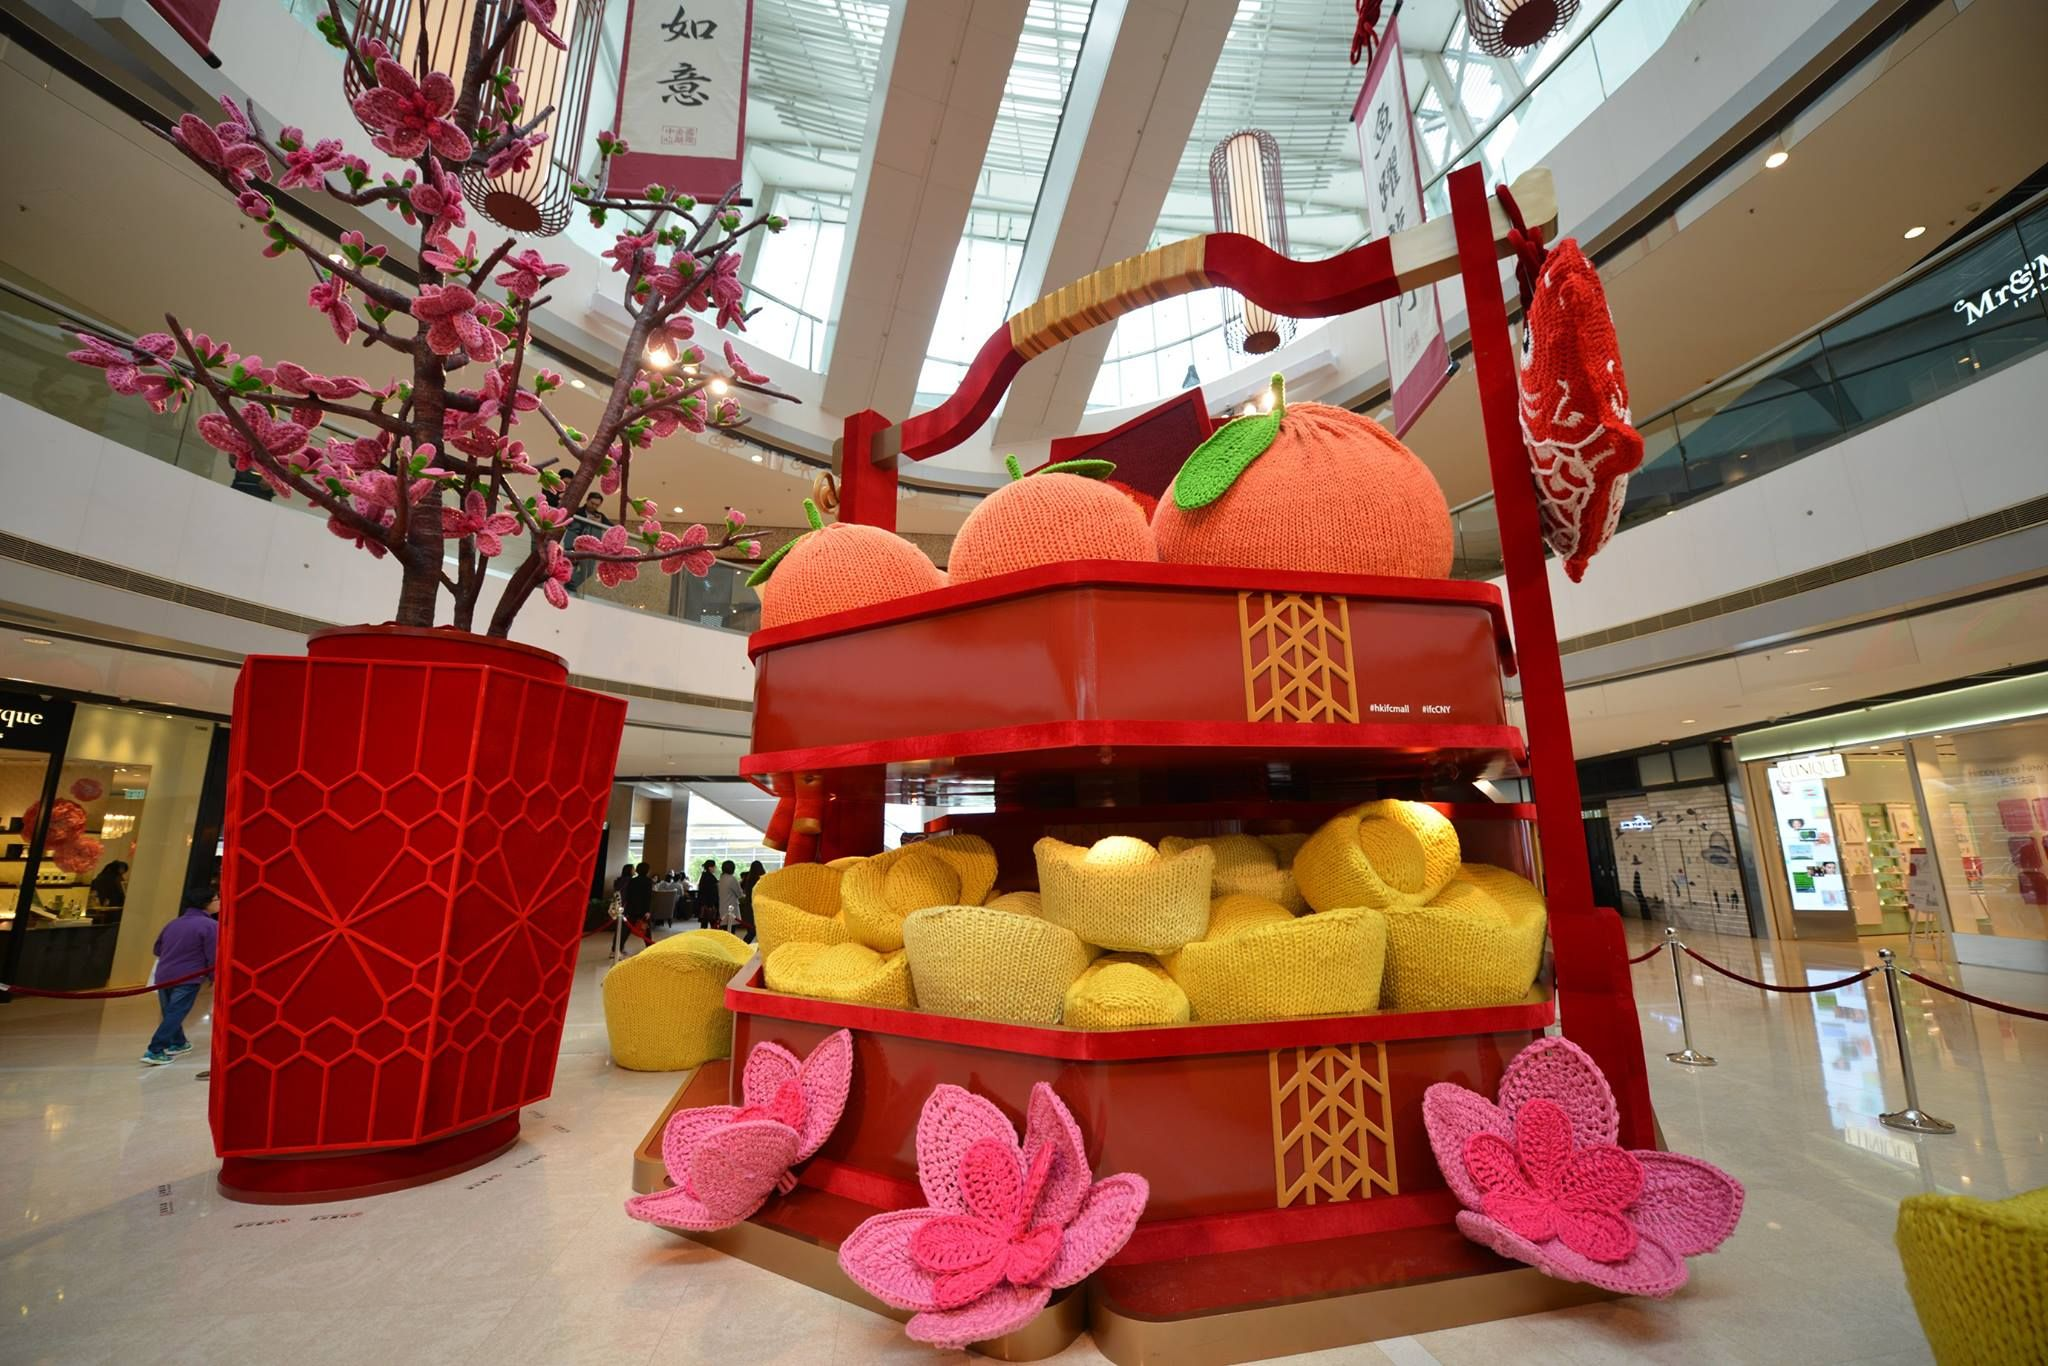 HK ifc mall 2017_2 | Lunar New Year decoration | Pinterest | Mall